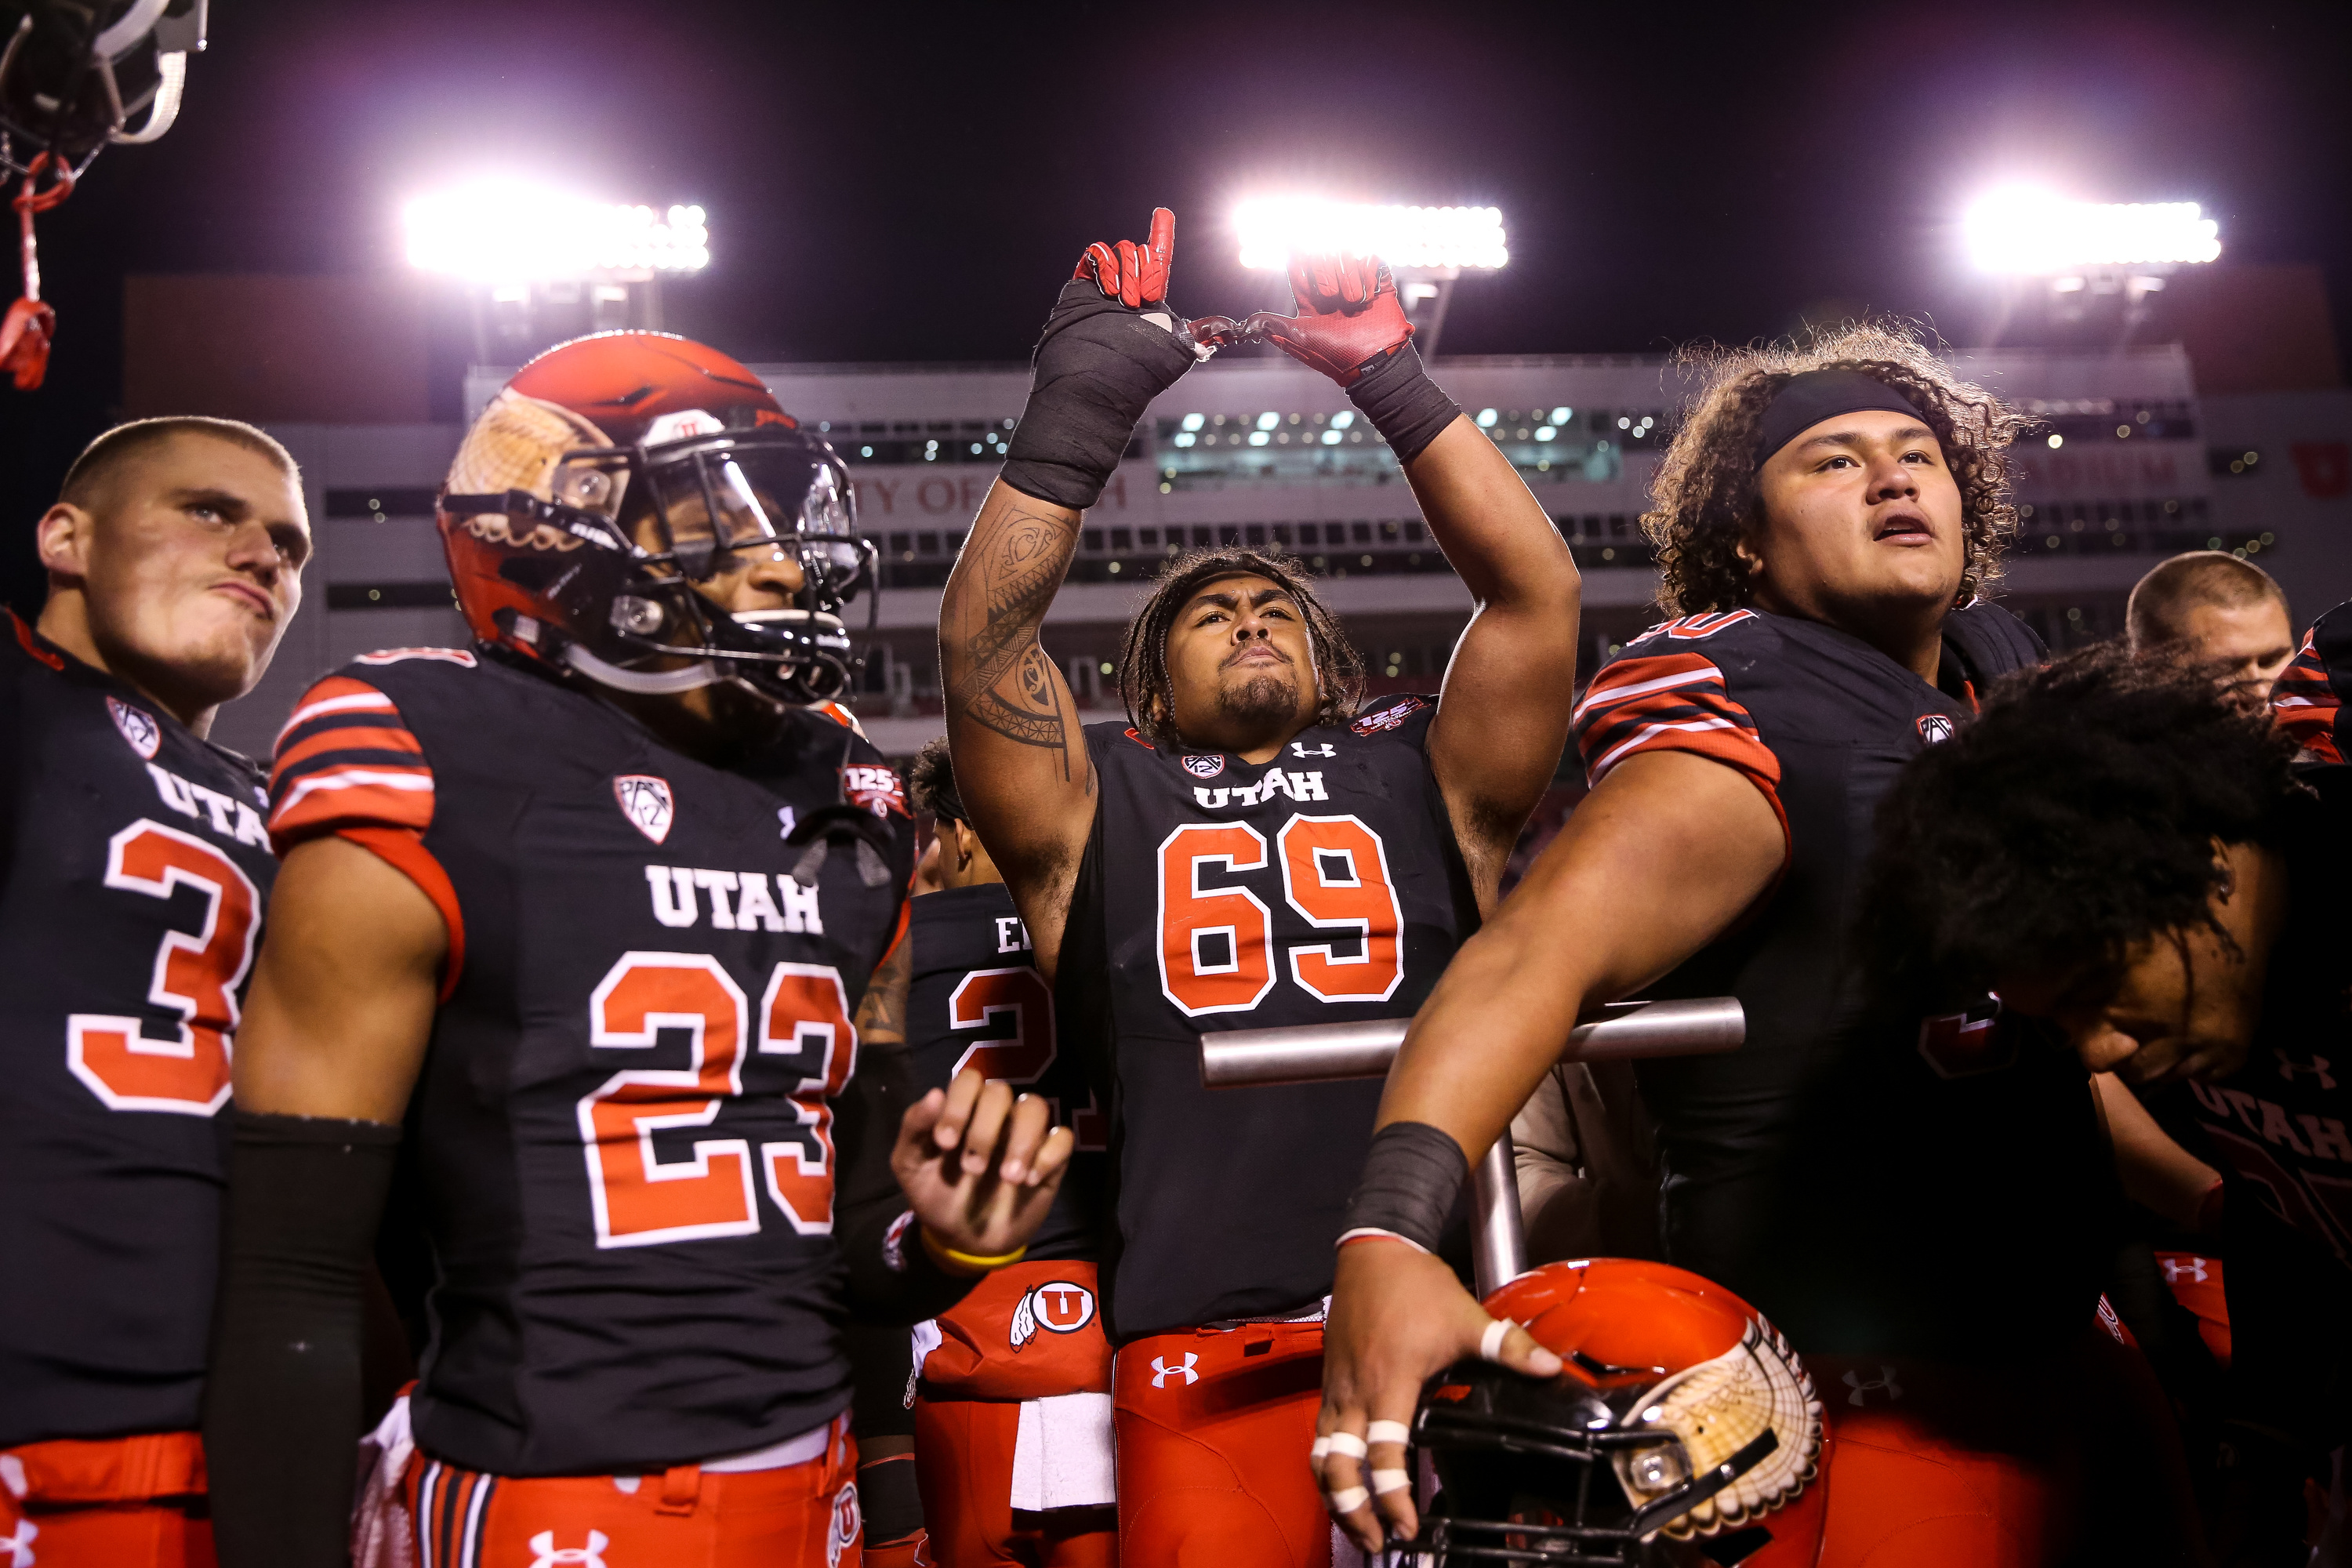 """Utah Utes offensive lineman Lo Falemaka (69) flashes the """"U"""" as he and teammates celebrate their win over the Oregon Ducks at Rice-Eccles Stadium in Salt Lake City on Saturday, Nov. 10, 2018."""